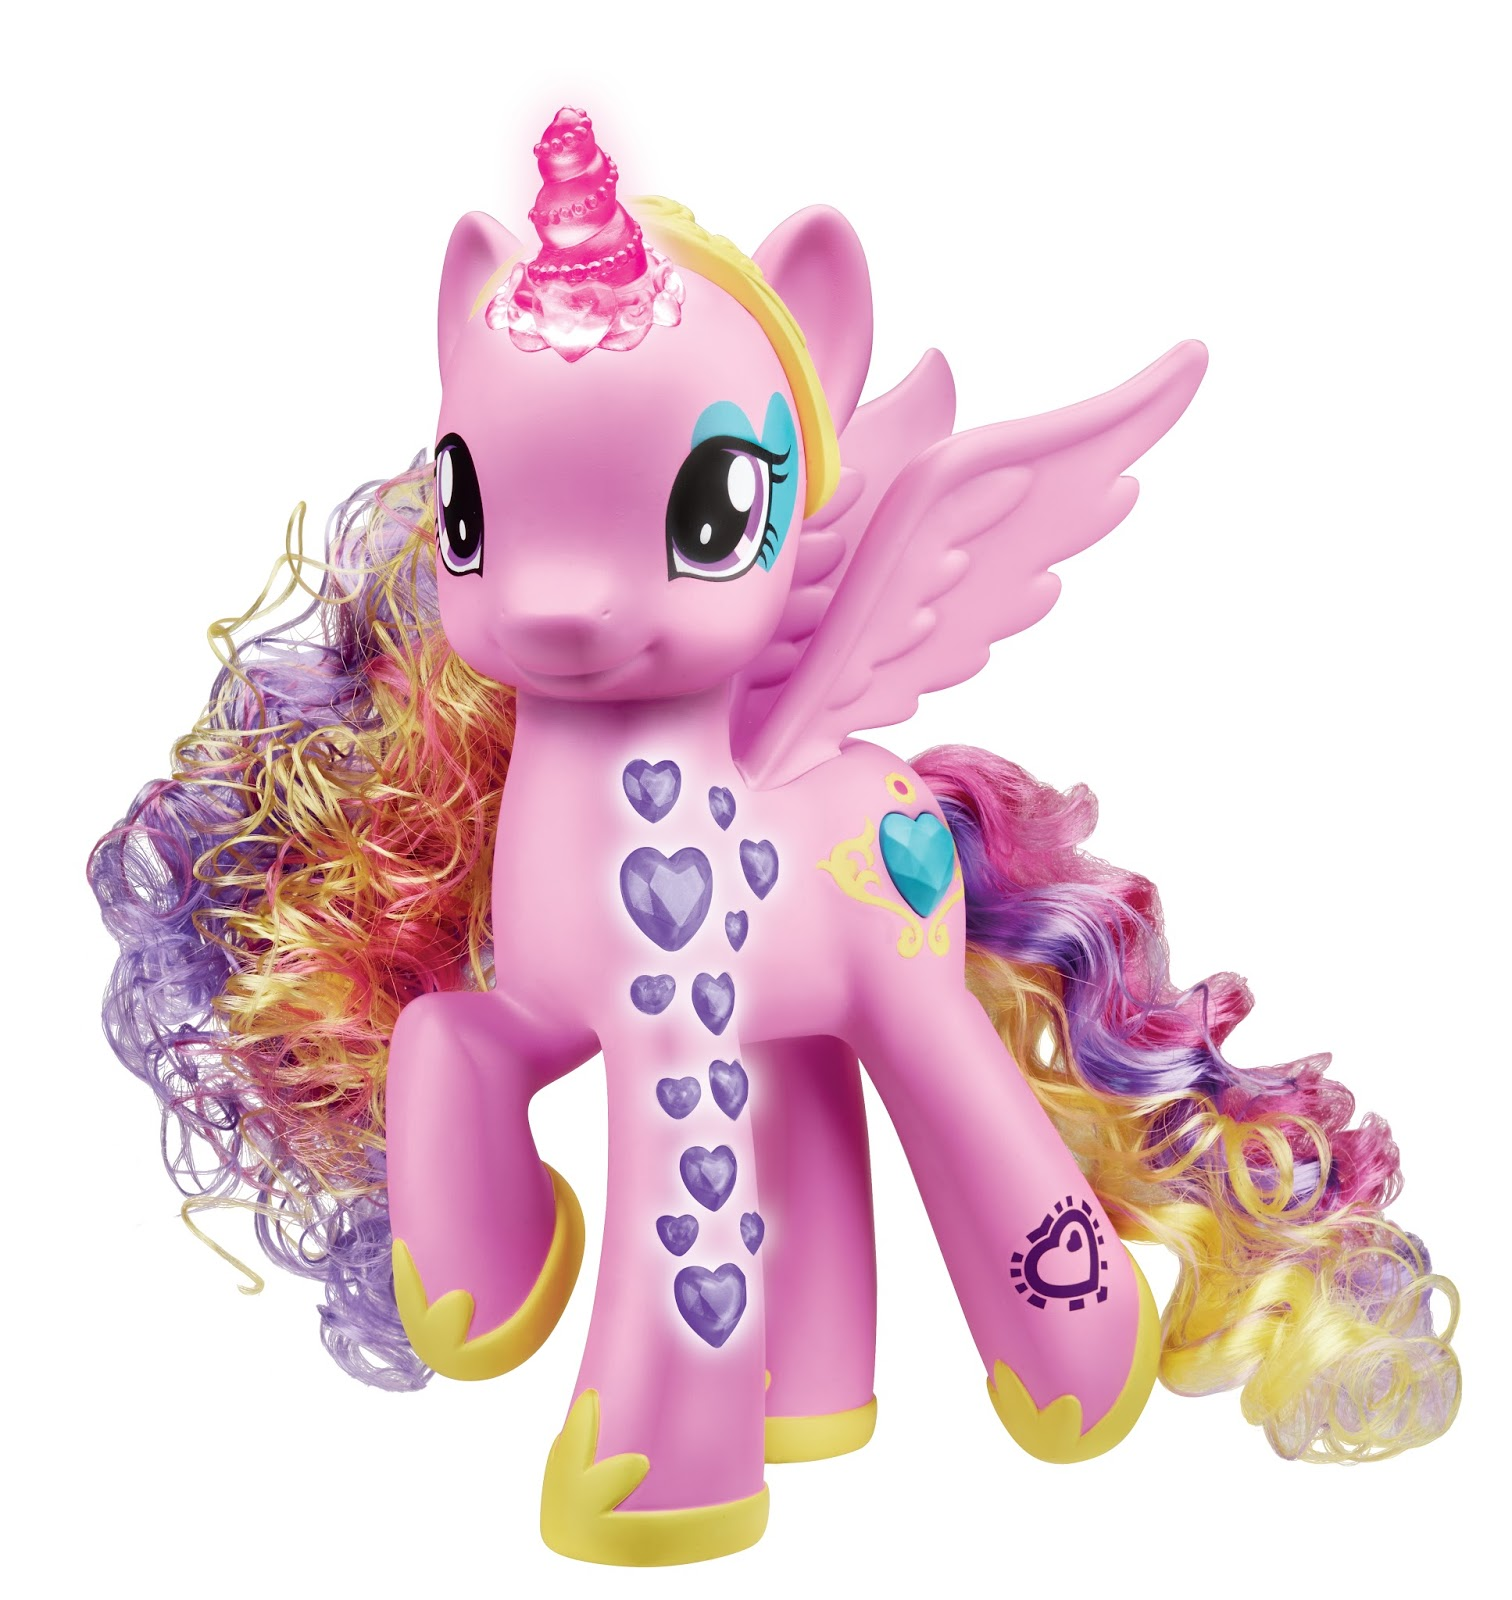 Toys For Ponies : Equestria daily mlp stuff quick recap of newsy